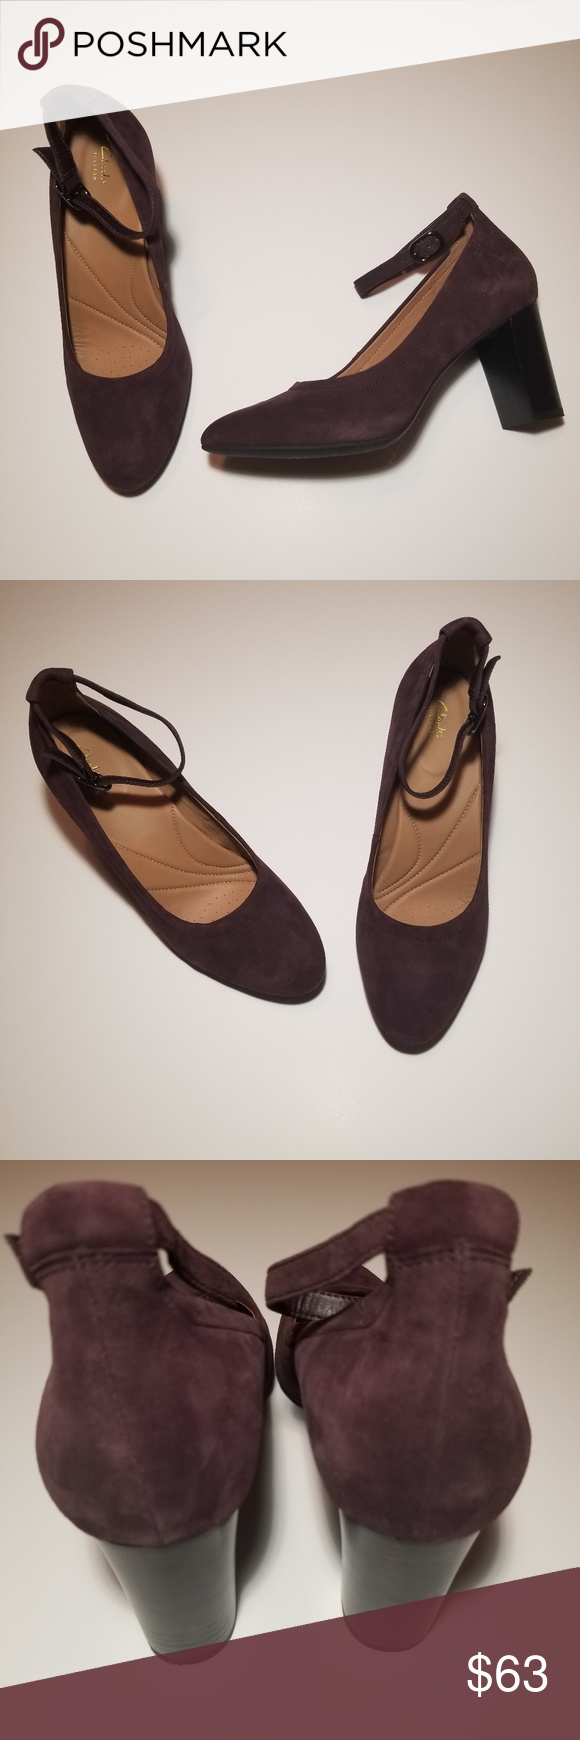 d59a06eed29f2 Clarks Chryssa Jana Ankle Strap Heels Dark purple suede heels with ankle  straps. Heel is approx. 3.25 inches high. New without tags or original box.